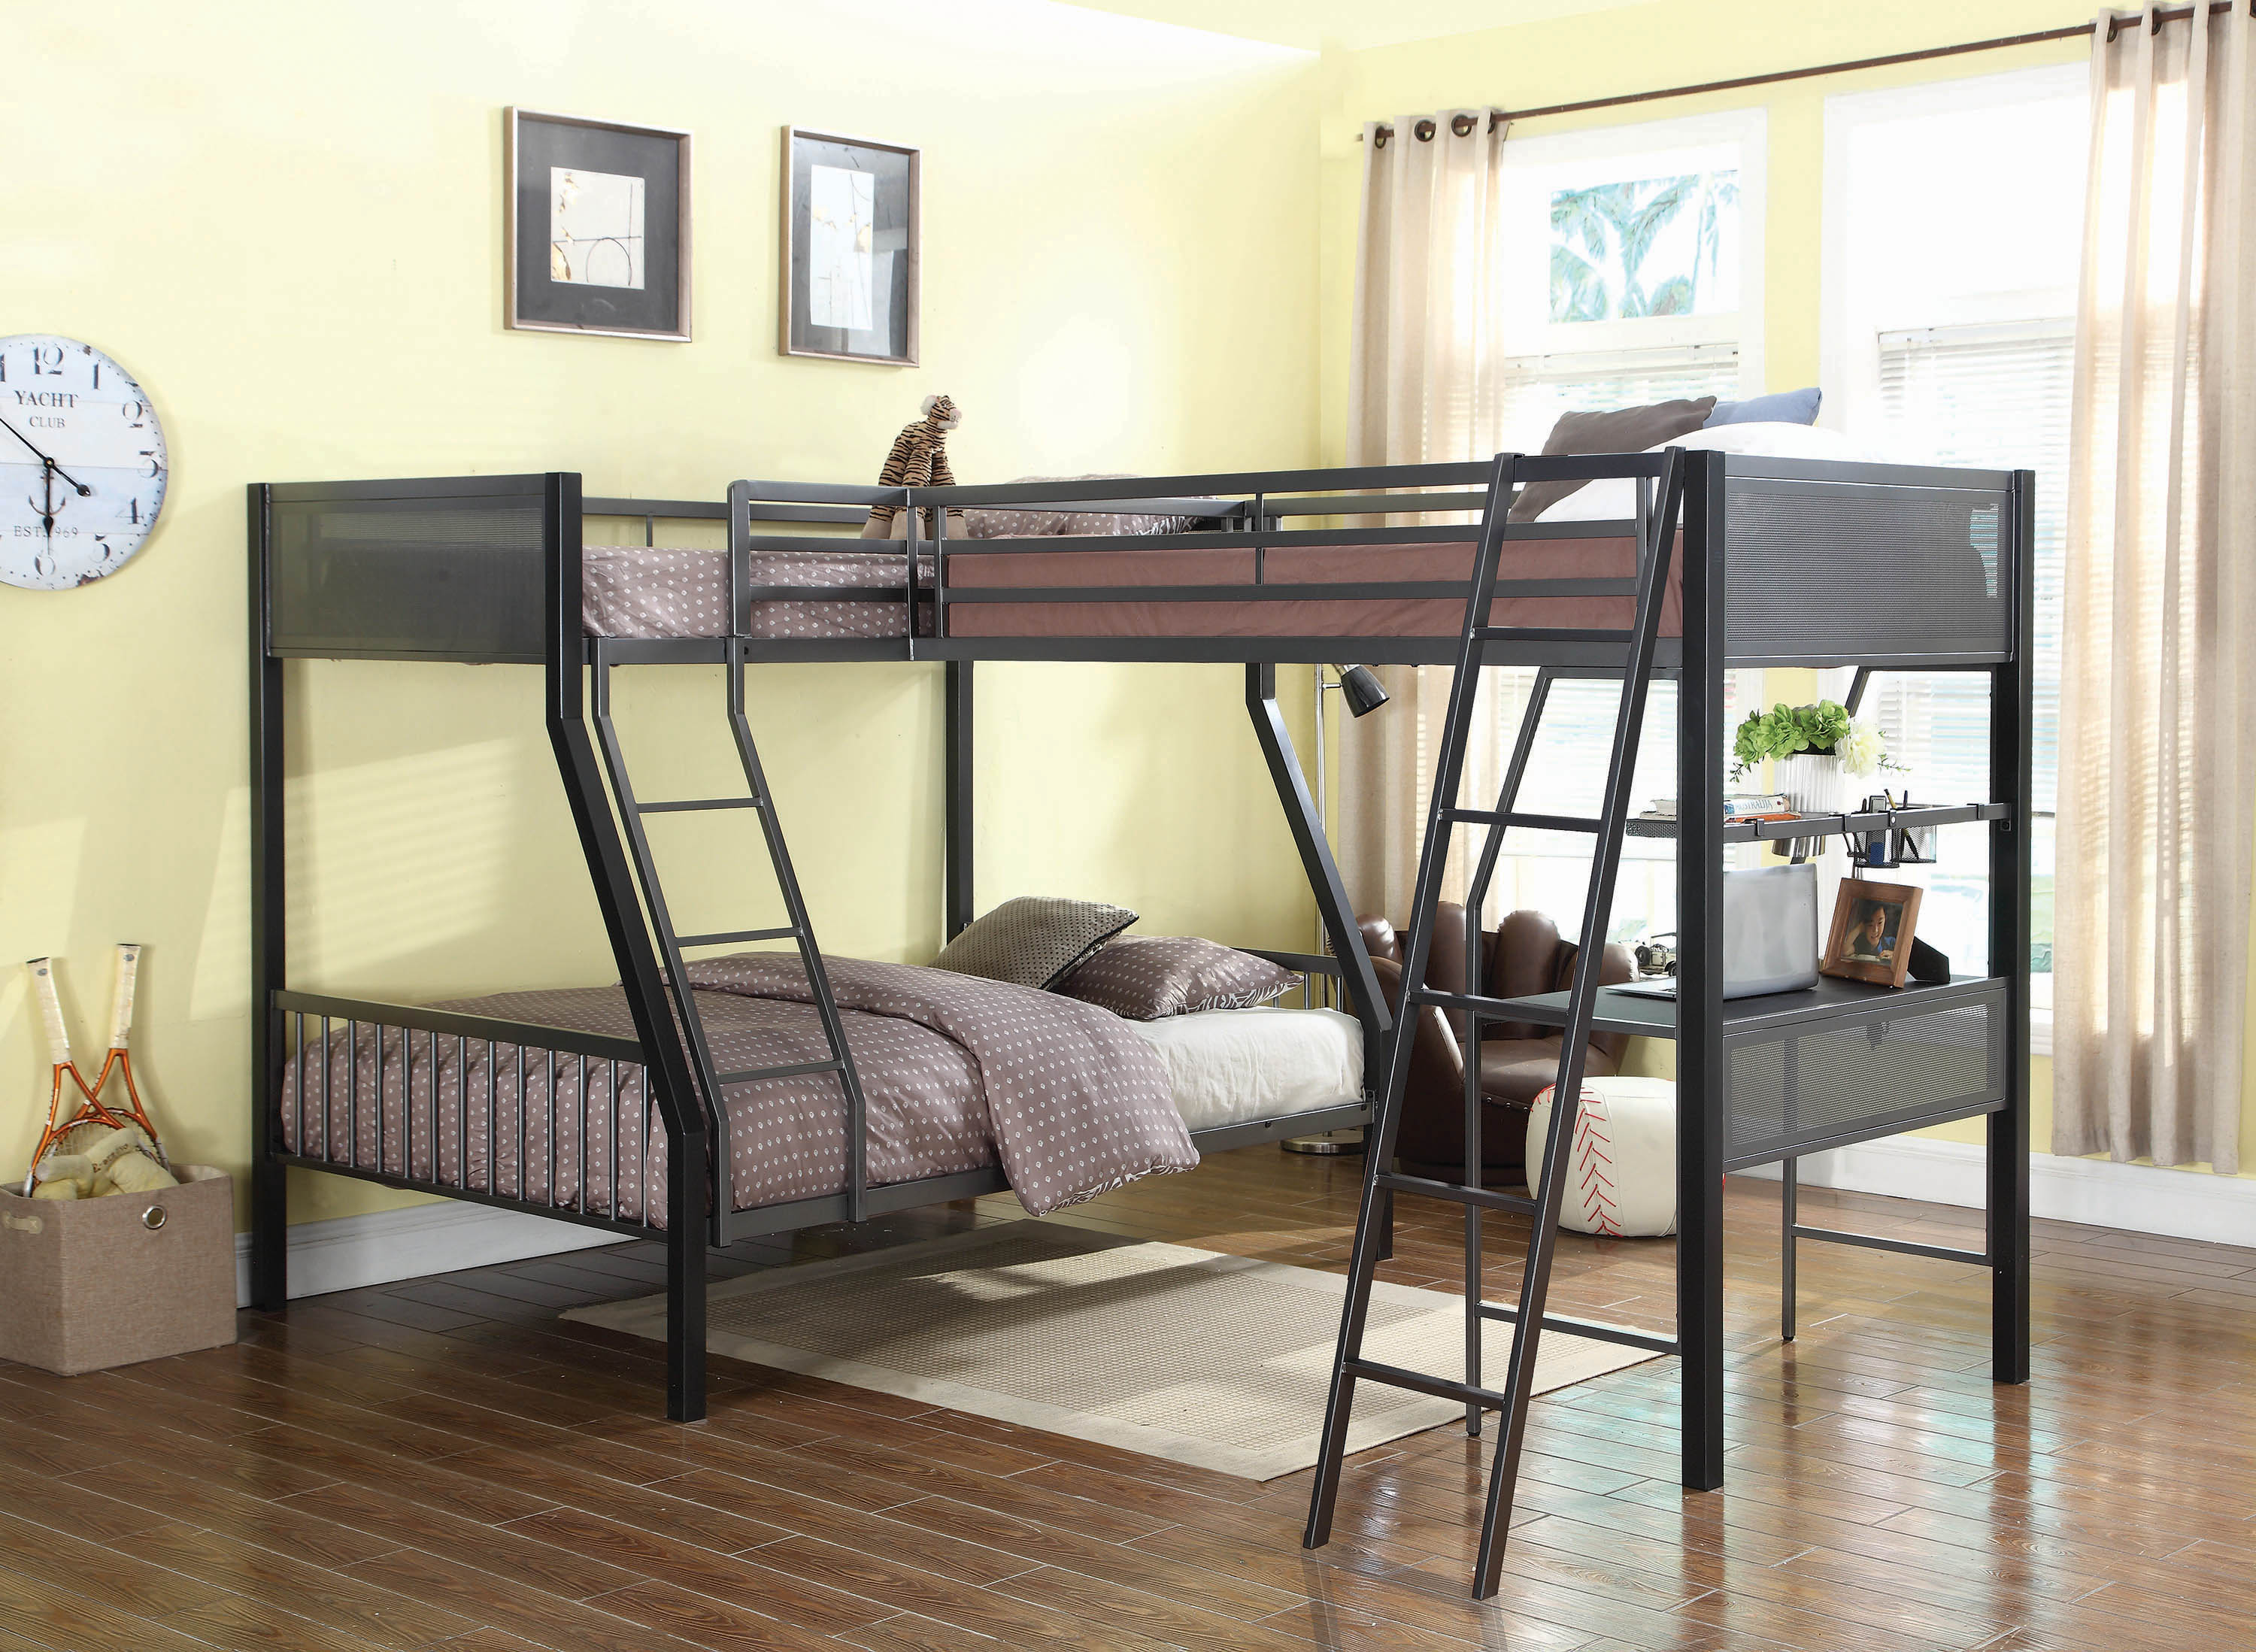 Image result for bunk beds 3 sleeper